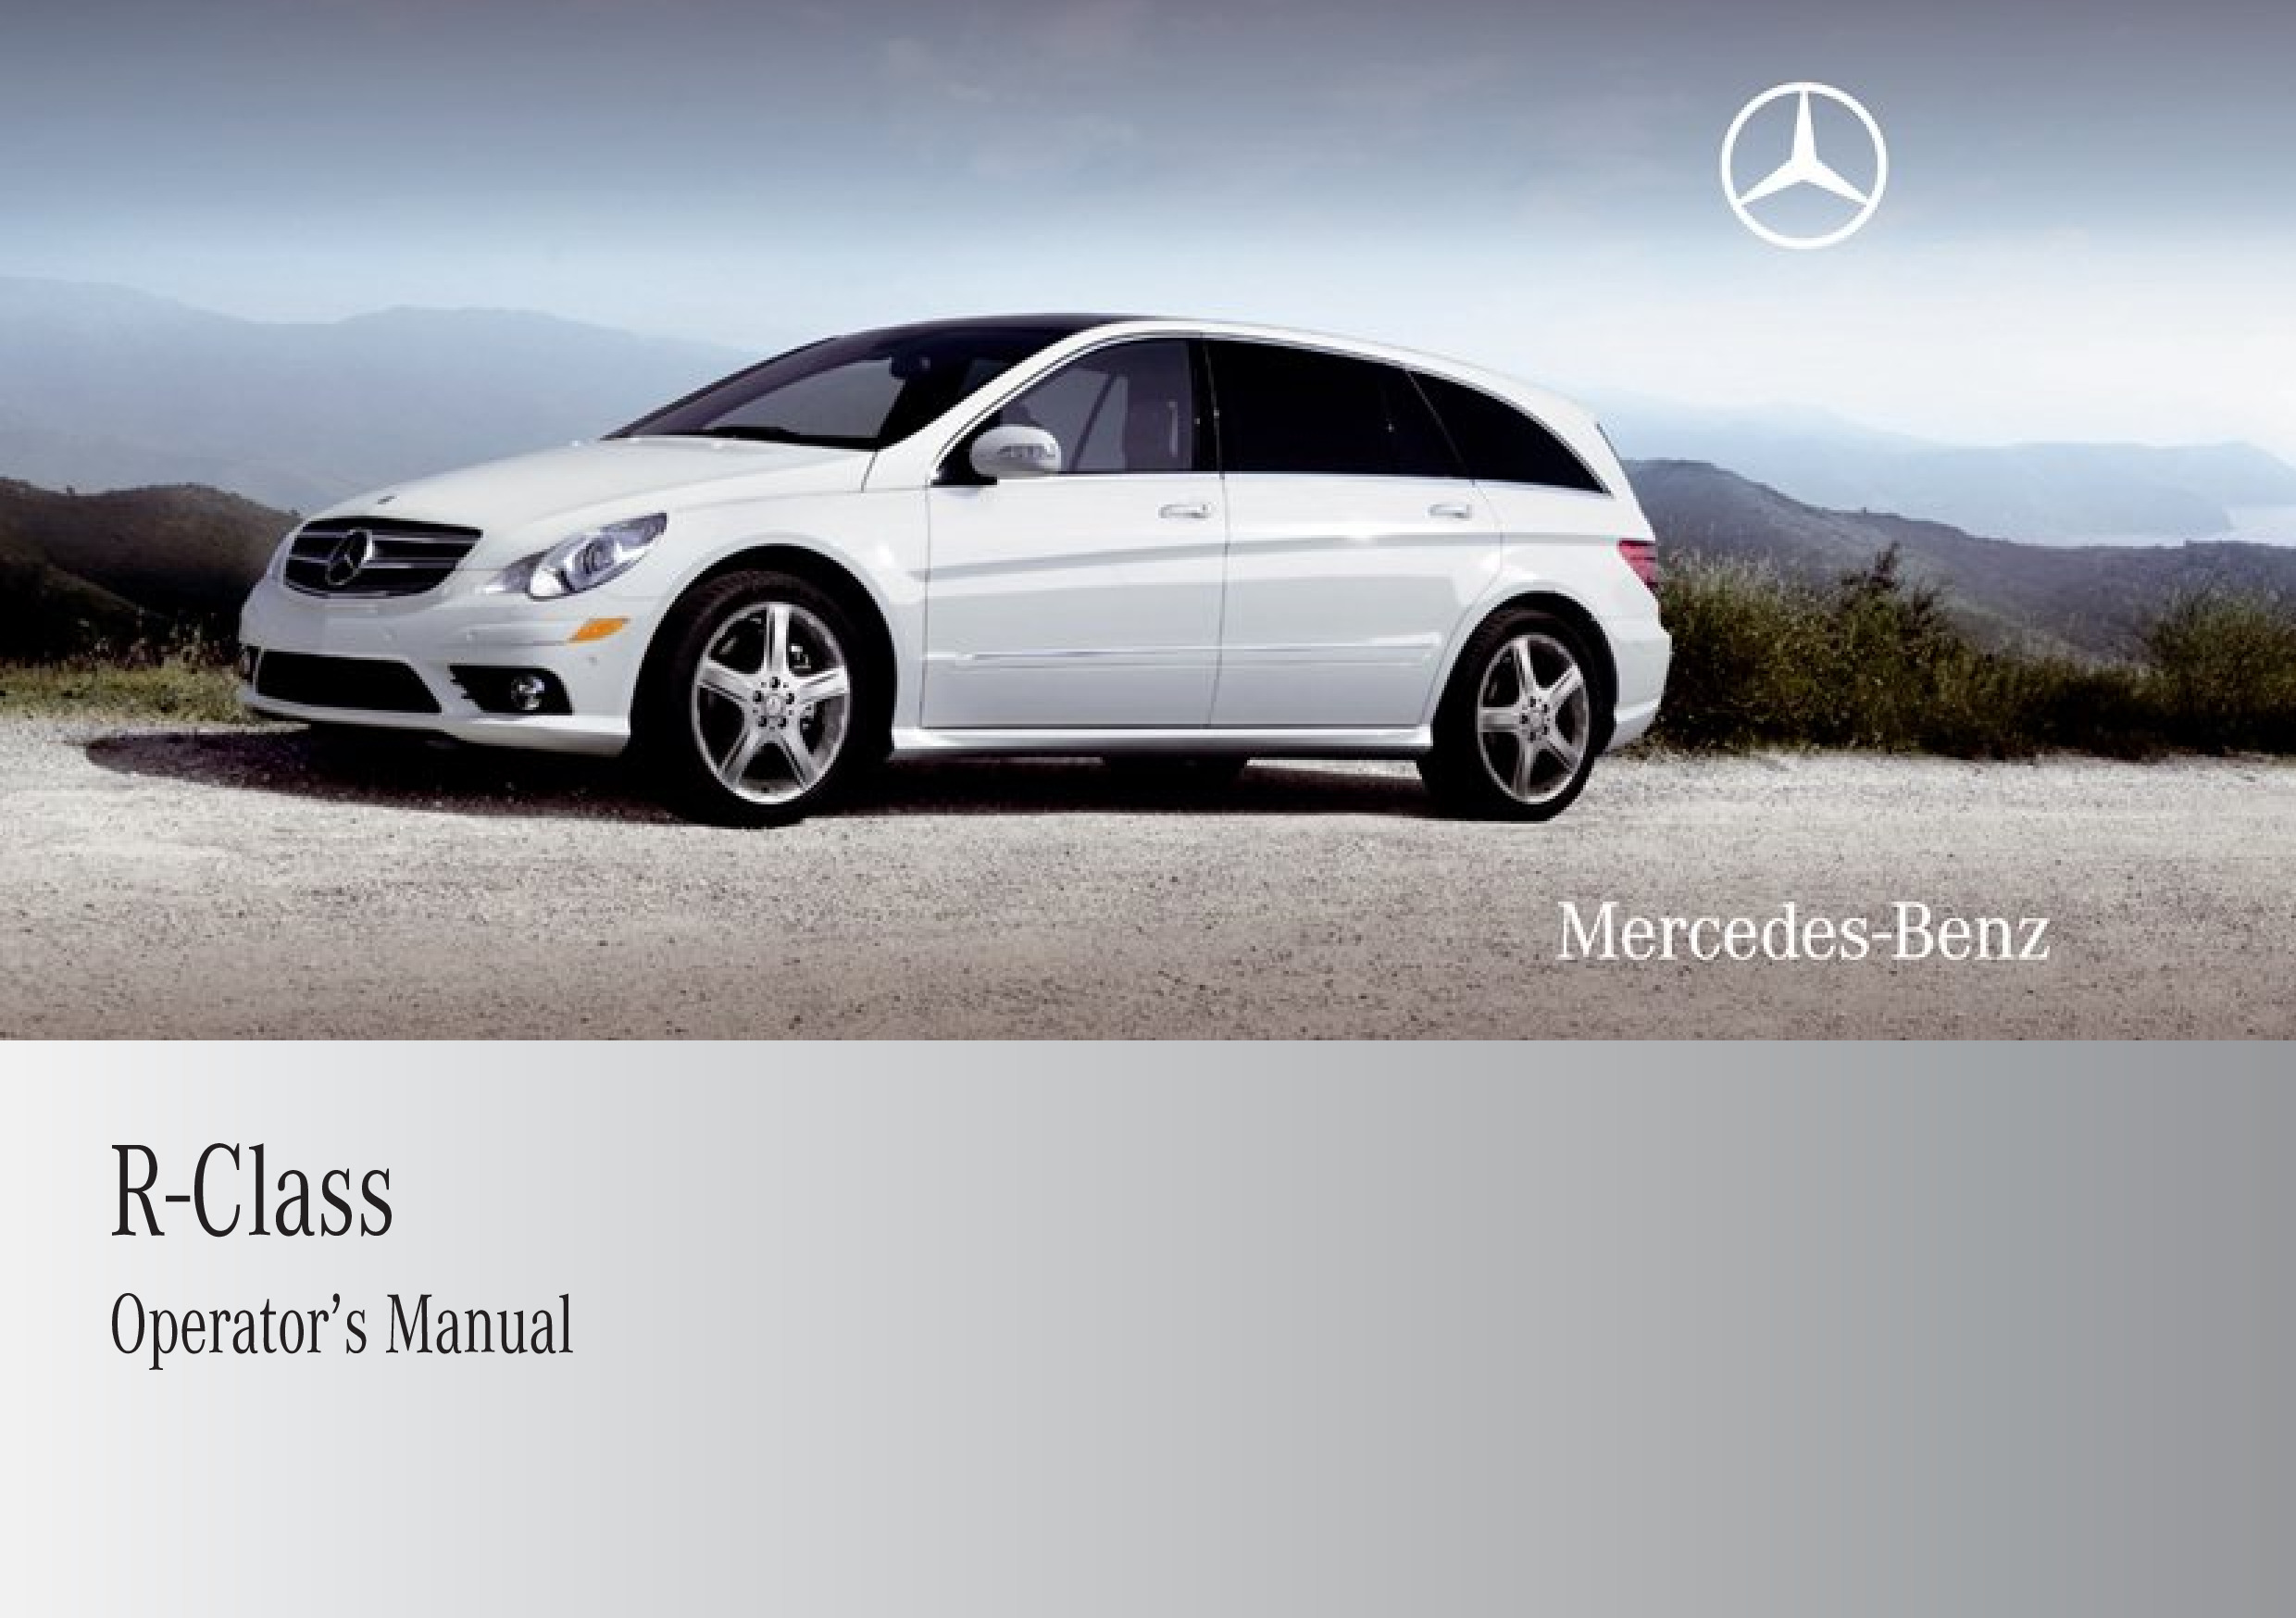 2009 Mercedes-Benz R Class owners manual